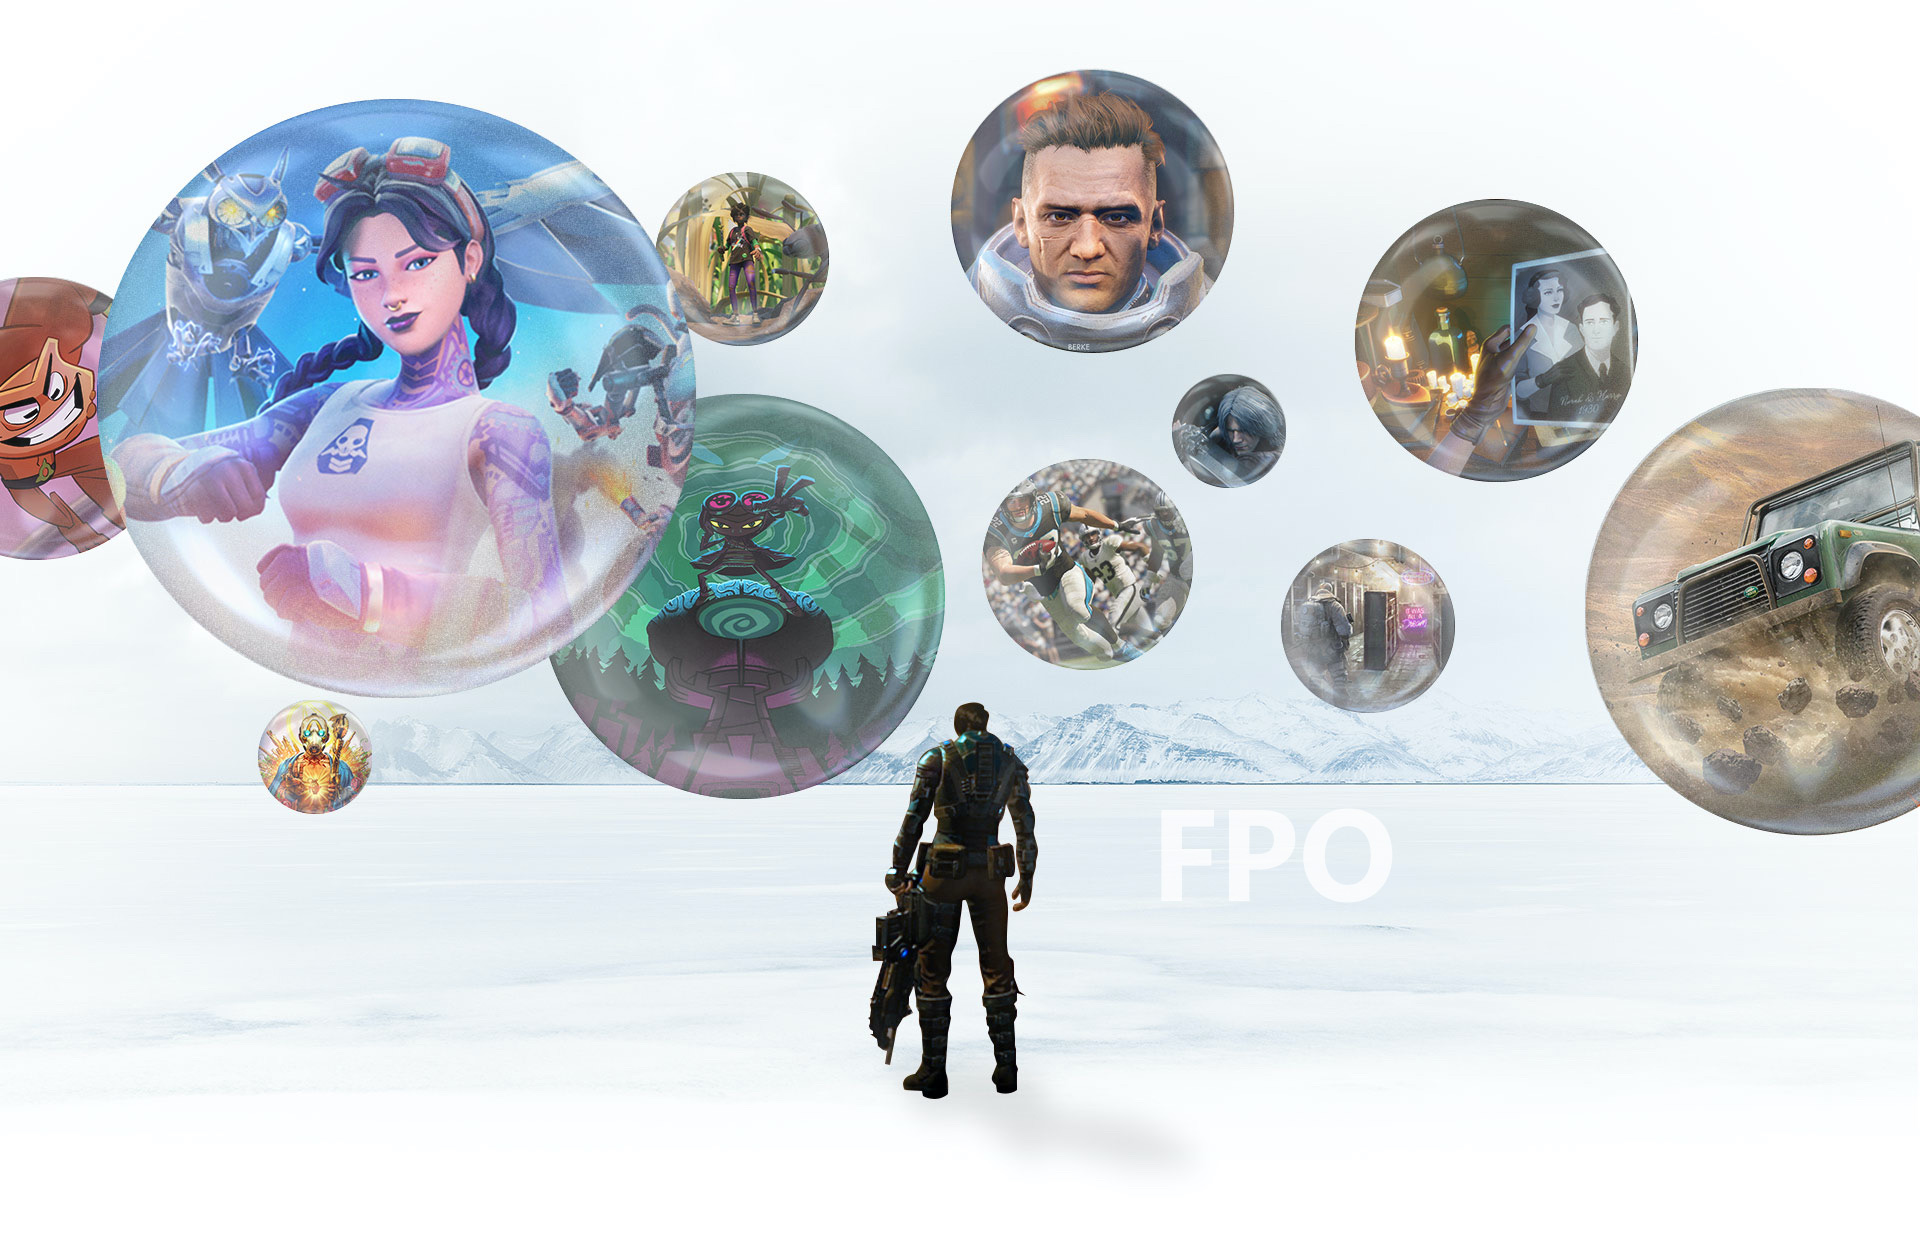 A COG soldier stands on a snowy landscape holding a Lancer assault rifle. Several icons depicting games float overhead. Back layer.